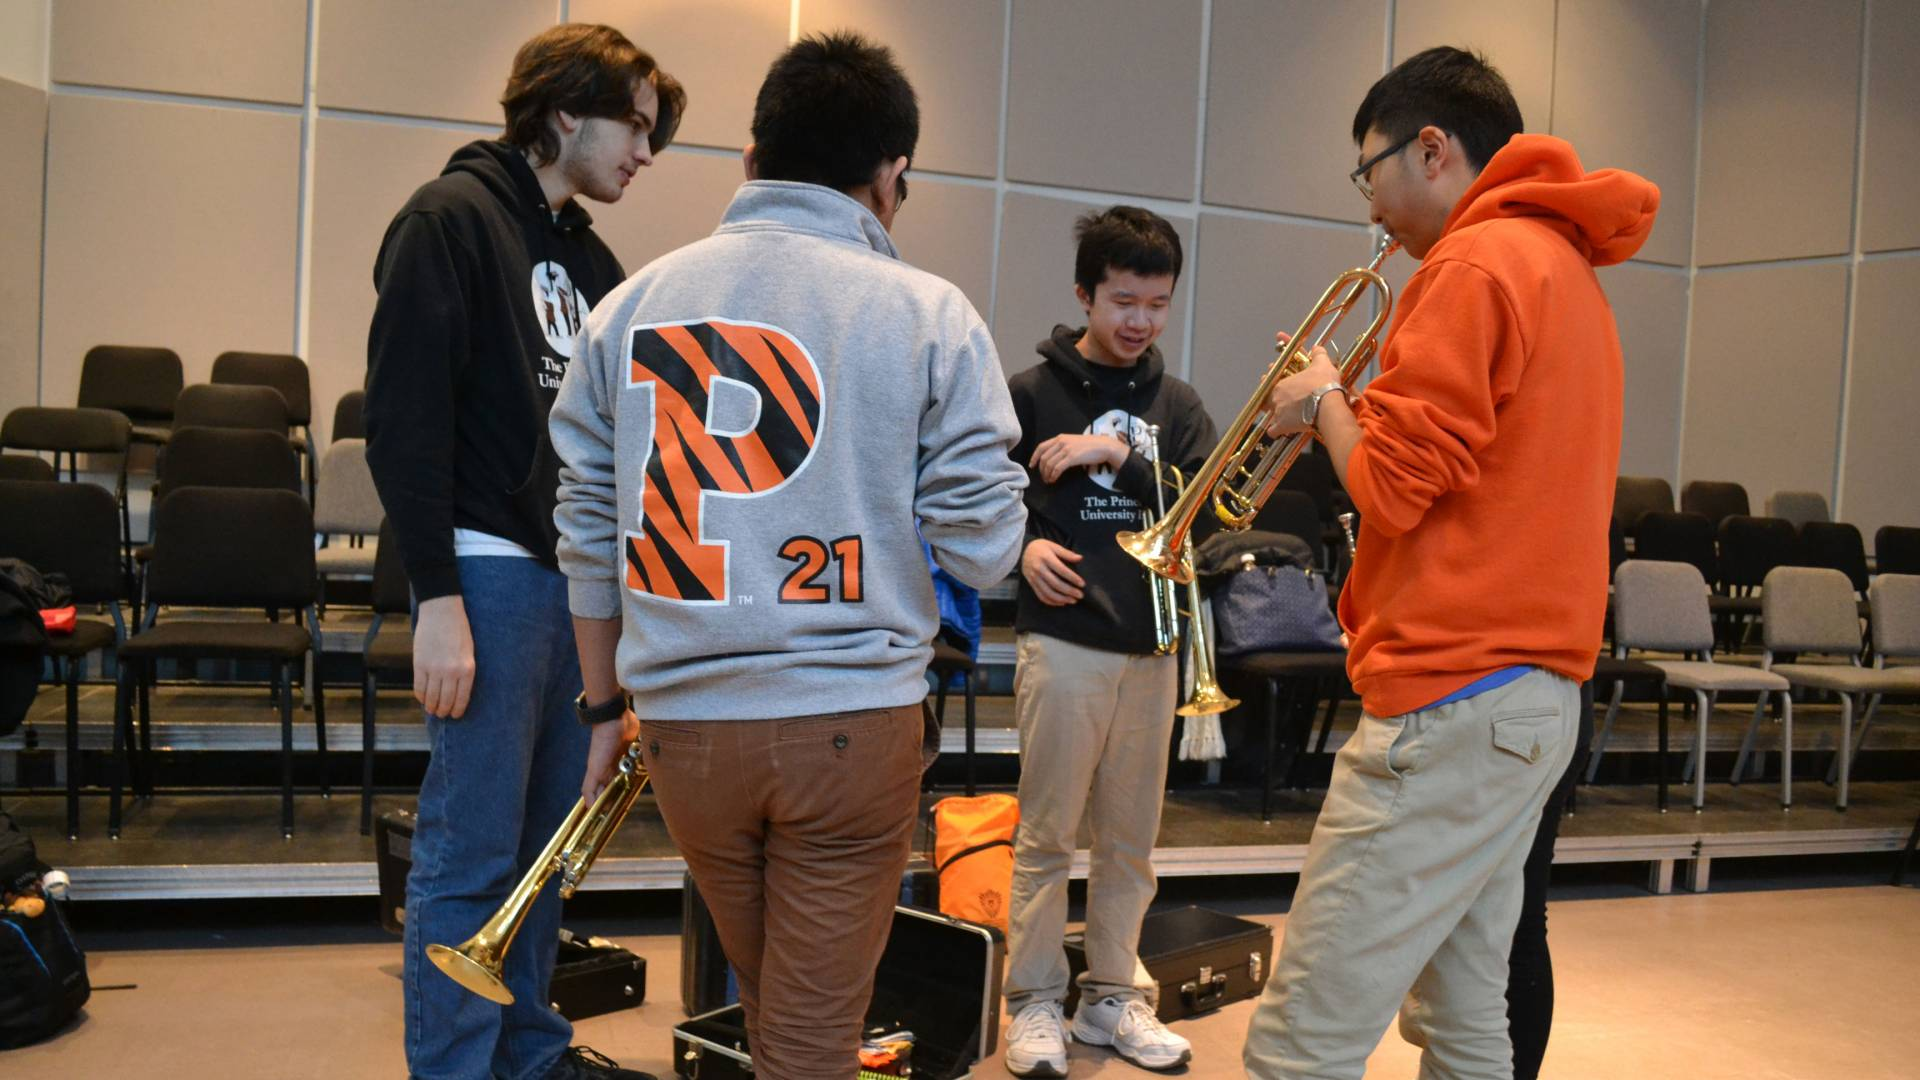 Students with wind instruments during Learn to Play an Instrument with the Band class